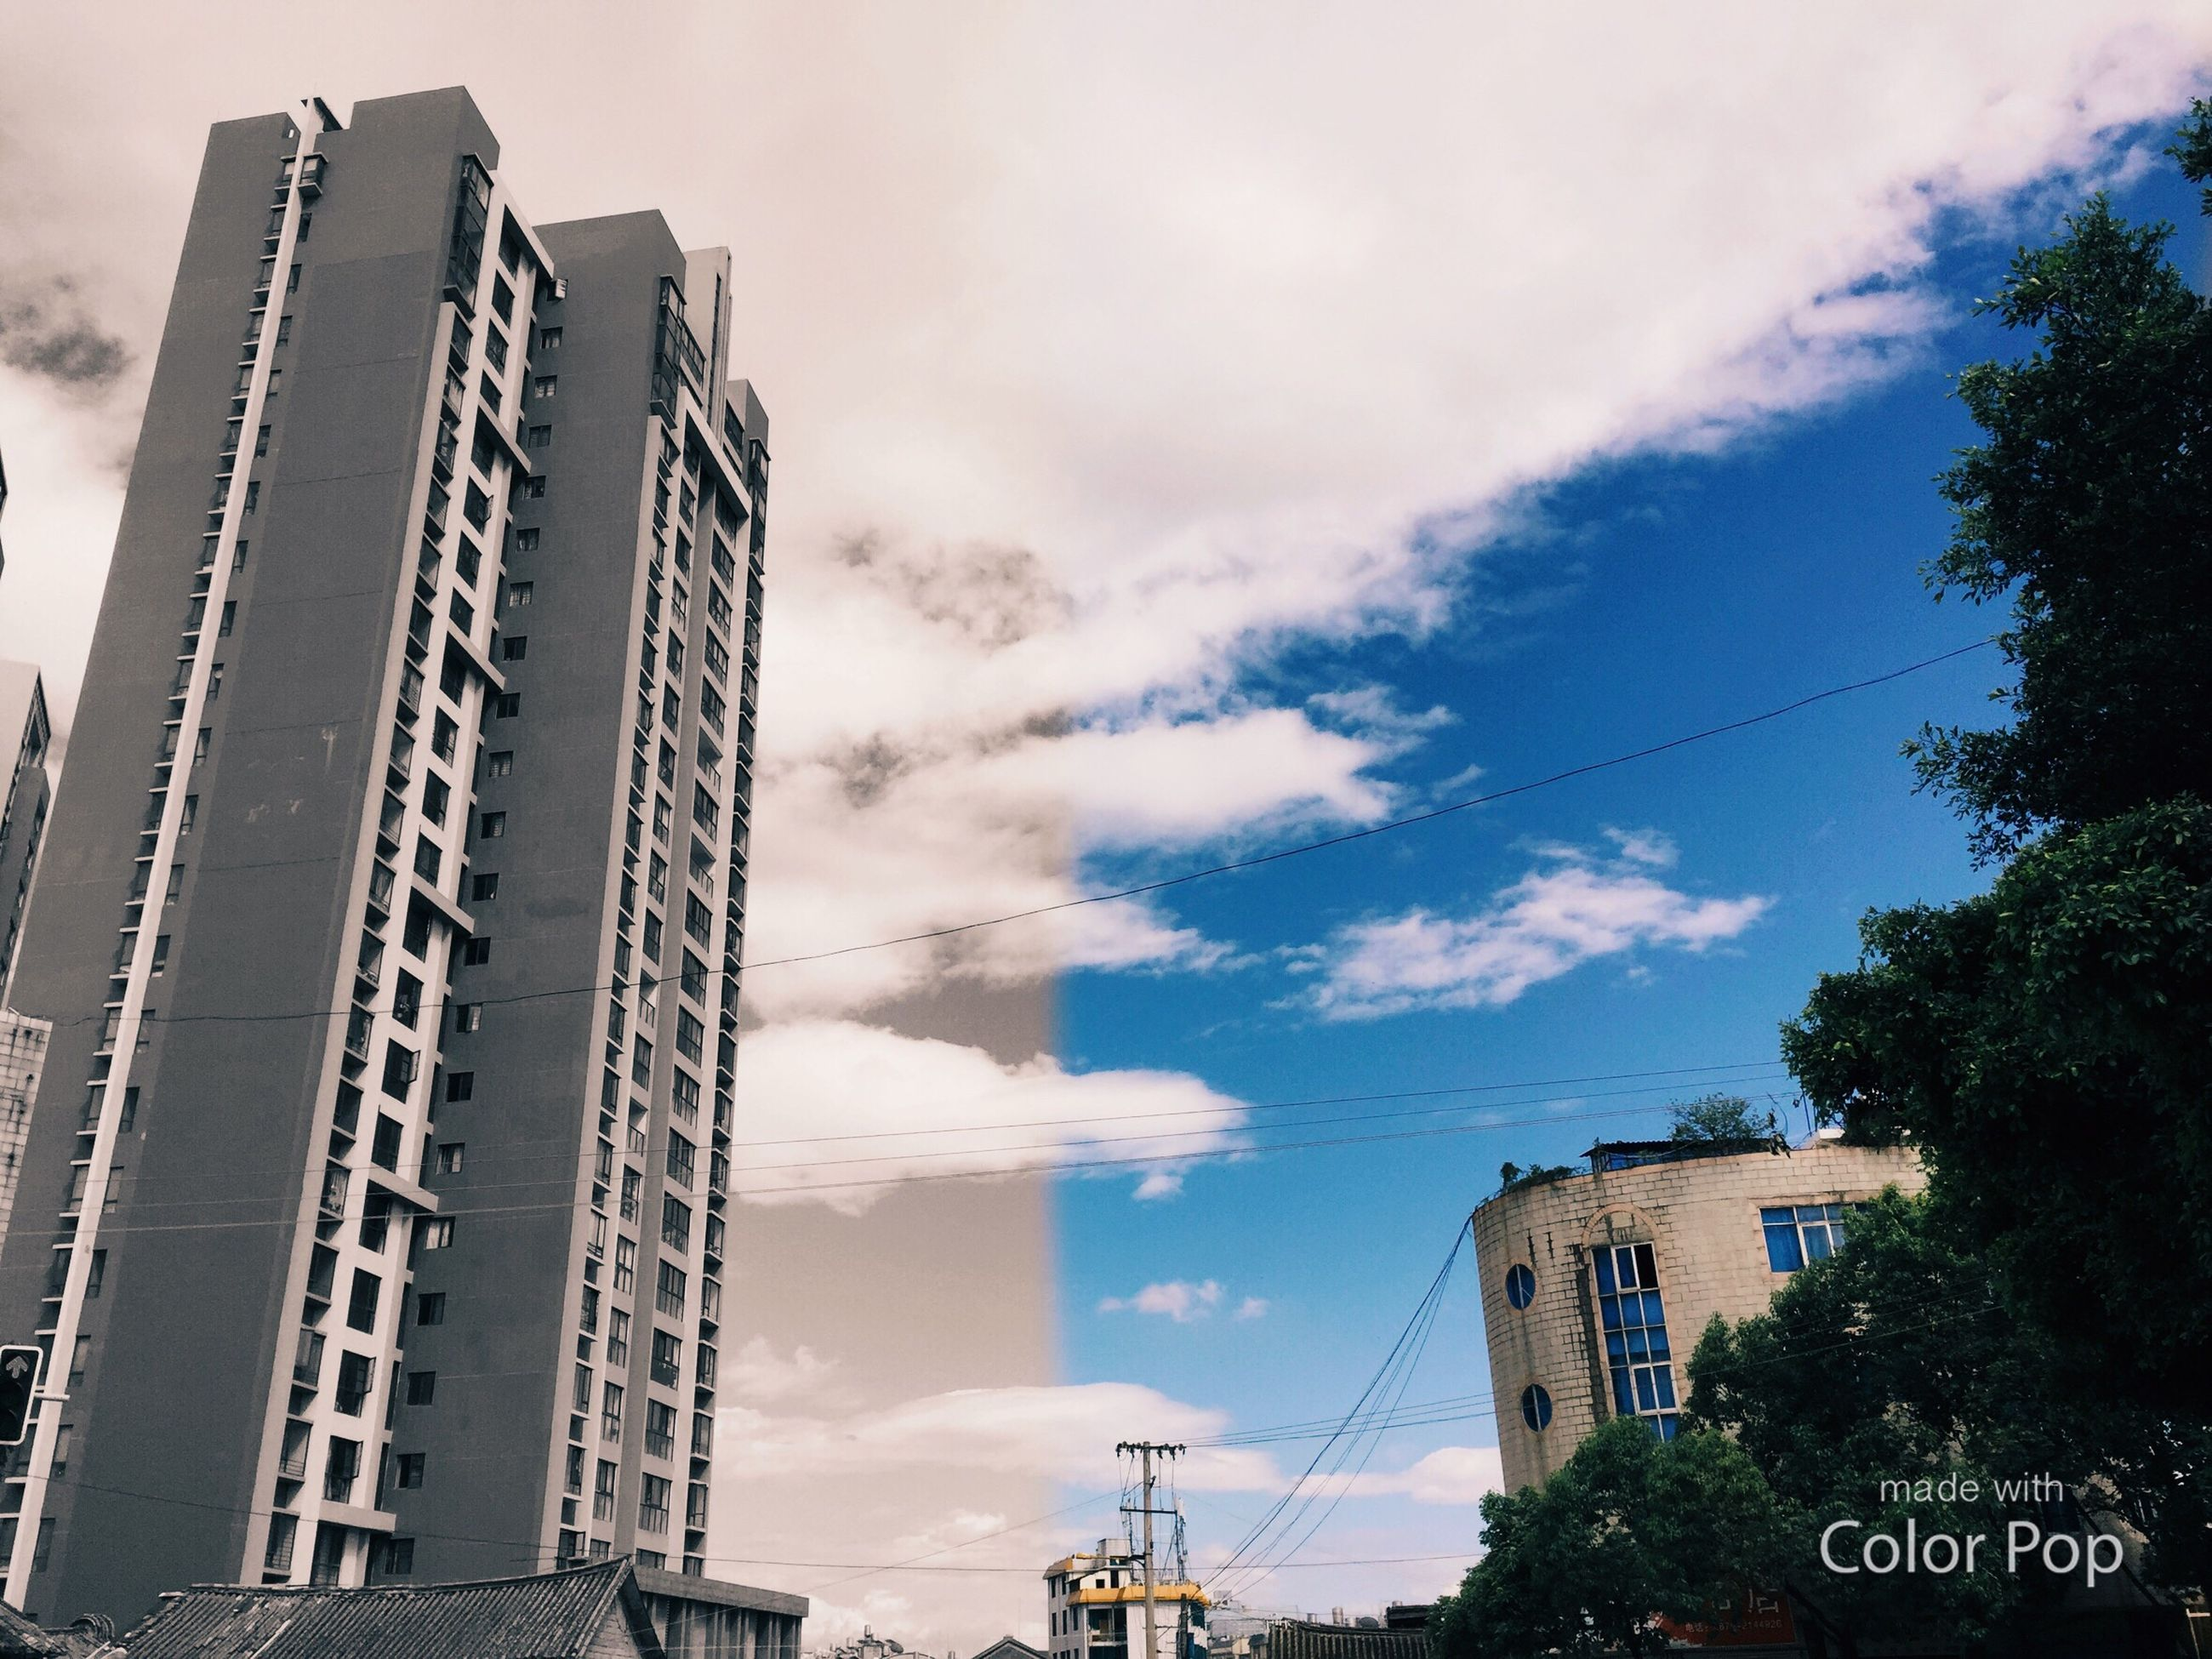 architecture, sky, built structure, cloud - sky, building exterior, low angle view, day, outdoors, tree, no people, city